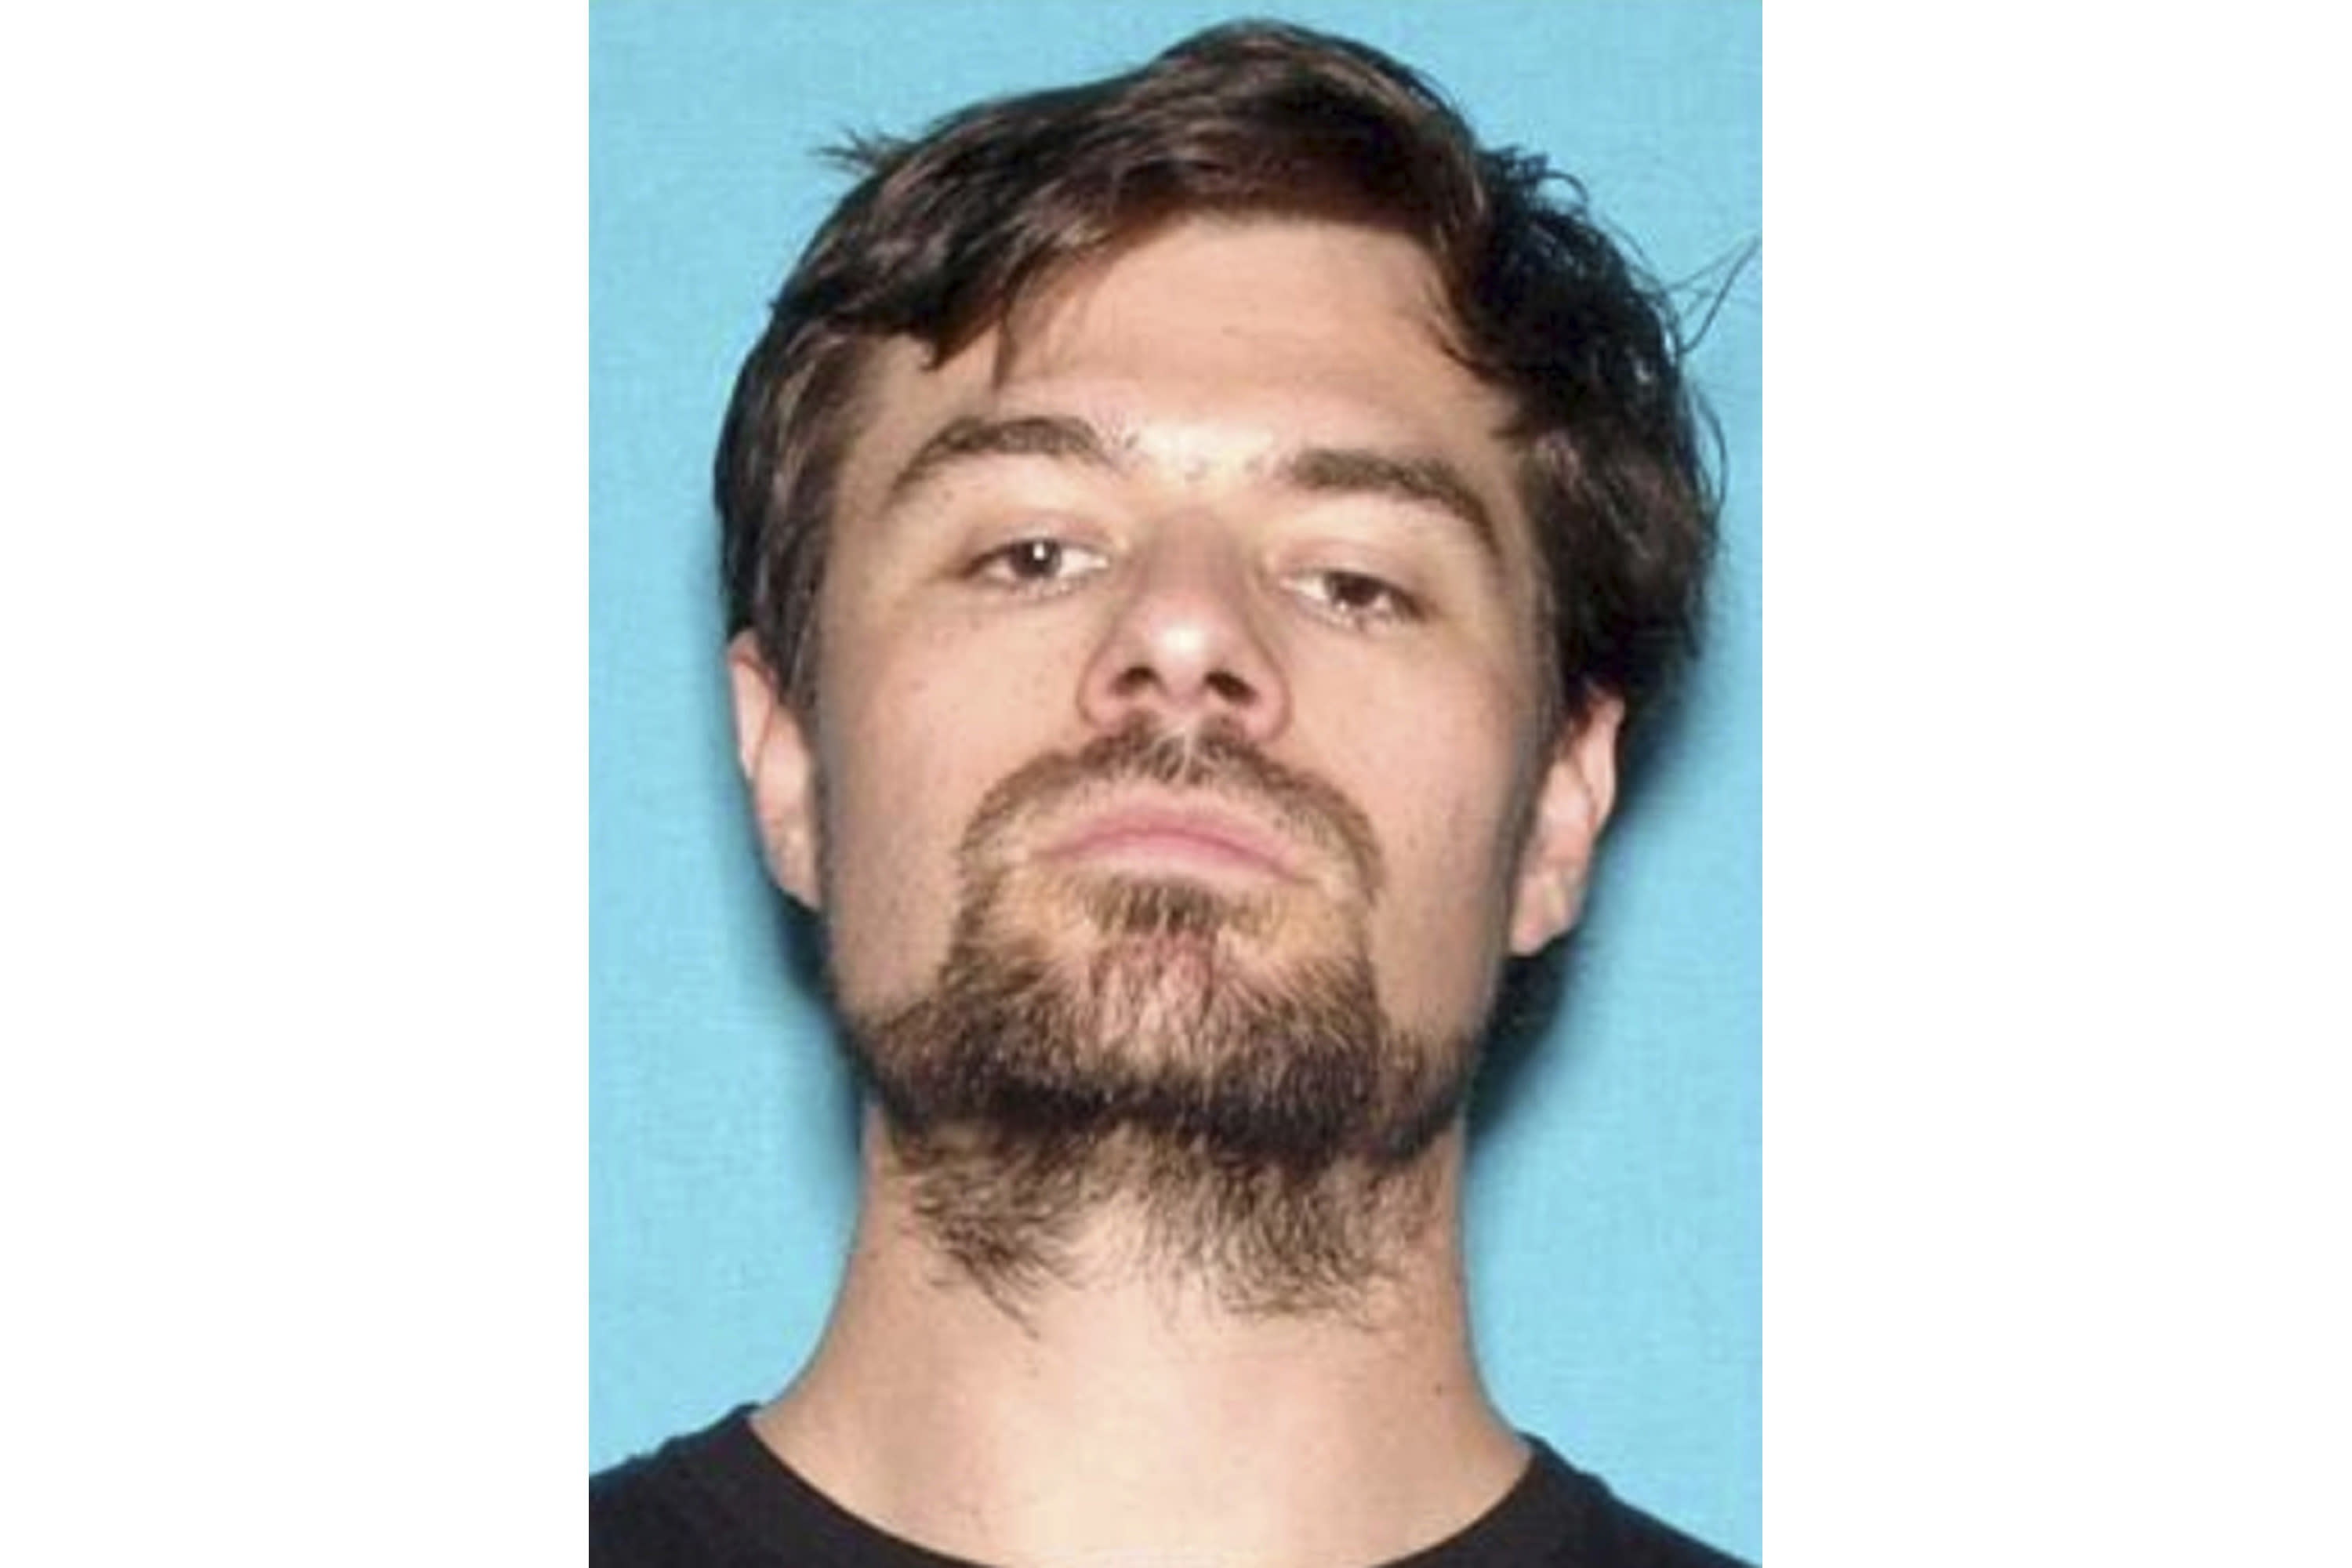 This 2017 photo from the California Department of Motor Vehicles shows Ian David Long. Authorities said the Marine combat veteran opened fire Wednesday evening, Nov. 7, 2018, at a country music bar in Southern California, killing multiple people before apparently taking his own life. (California Department of Motor Vehicles via AP)